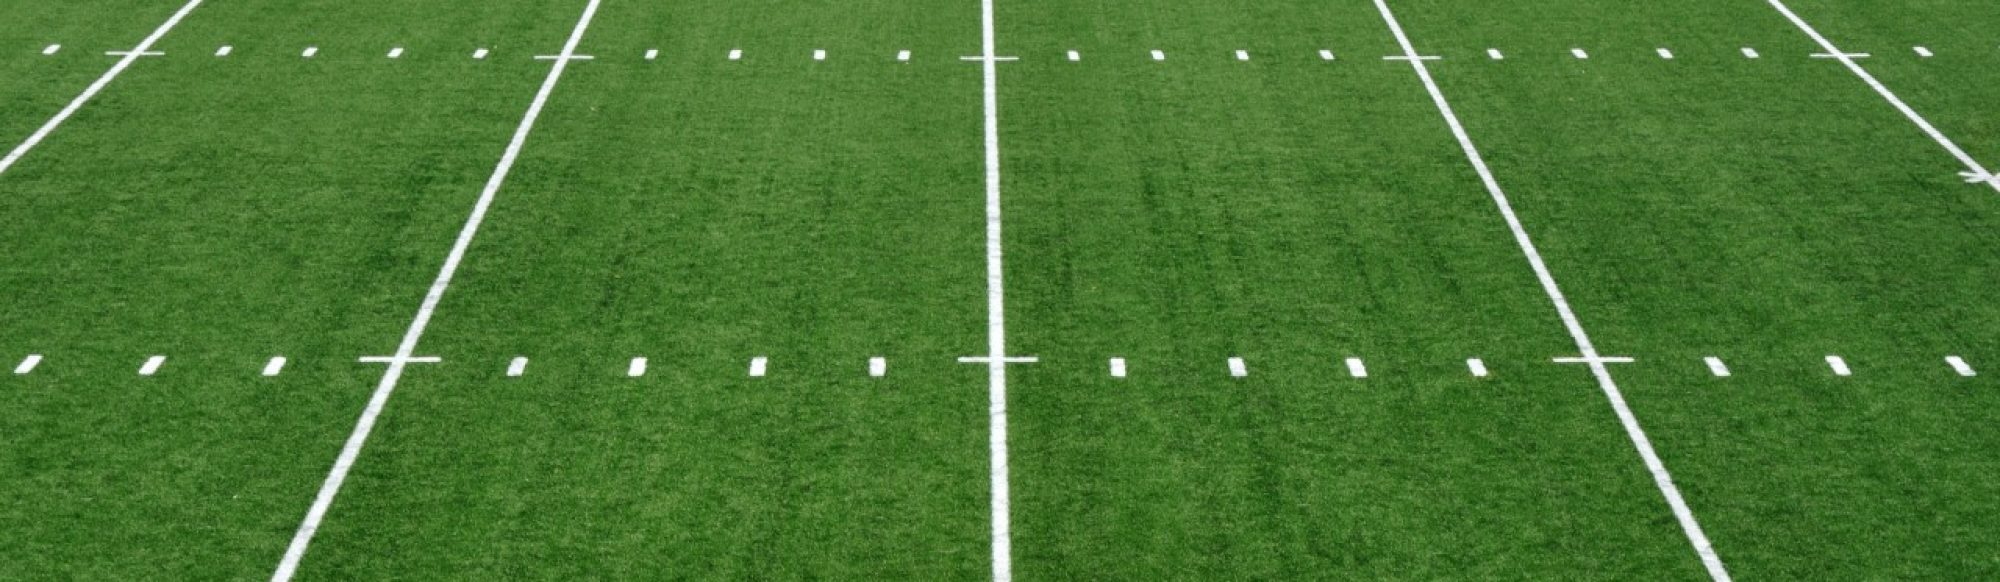 Cropped-Football-field-clipart-6.jpg-cropped-Football-field-clipart-6.jpg-9